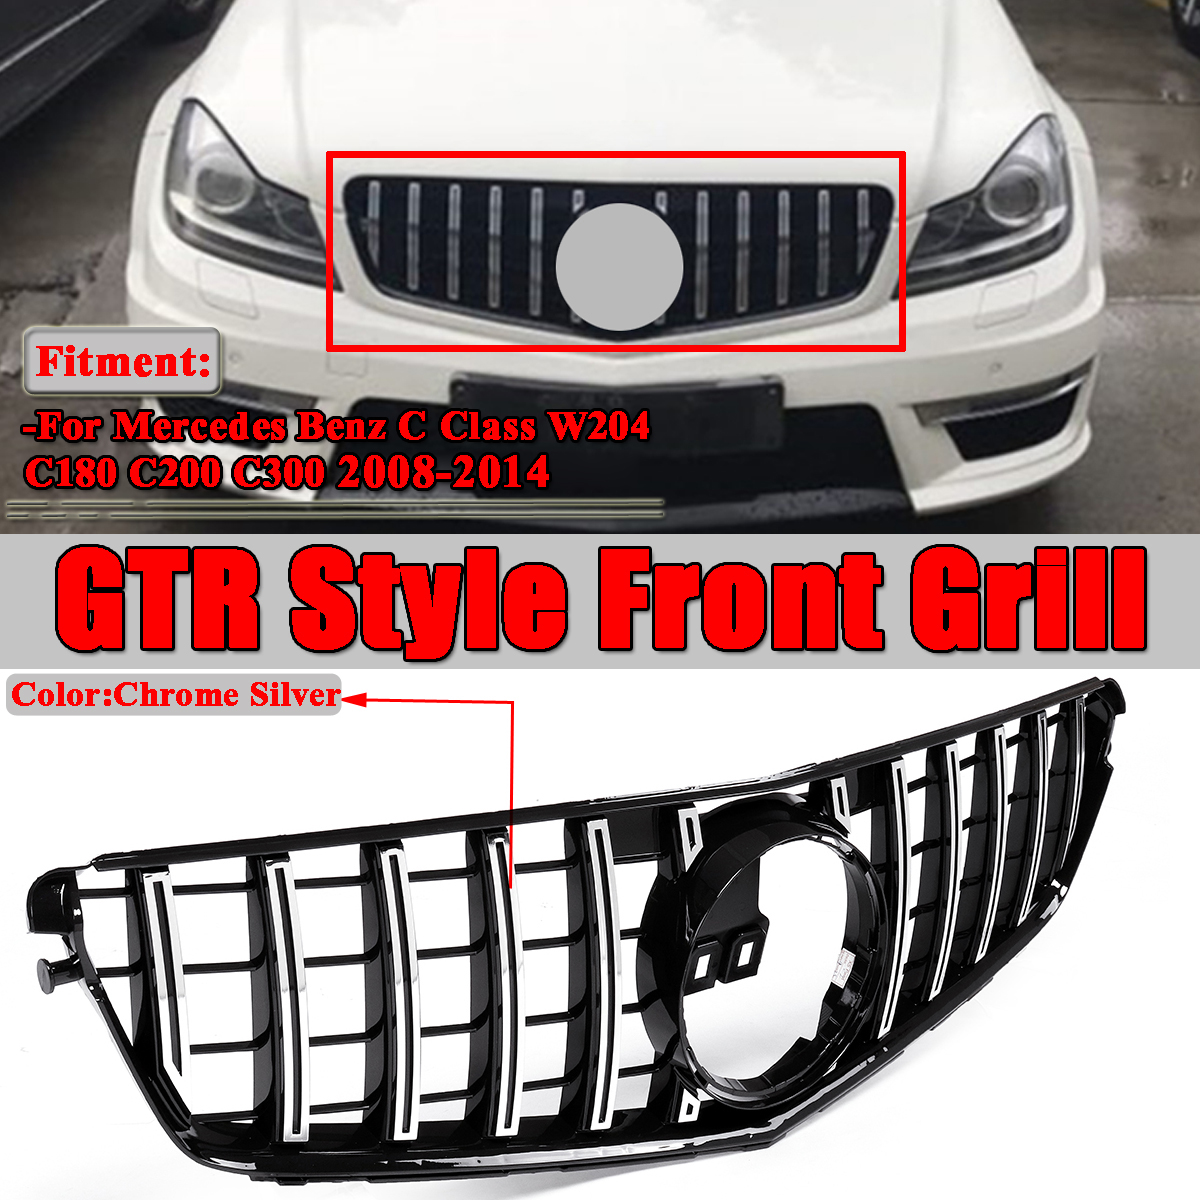 Not for C63 Black GT R style Panamericana front grille for Mercedes Benz C class W204 2008-2014